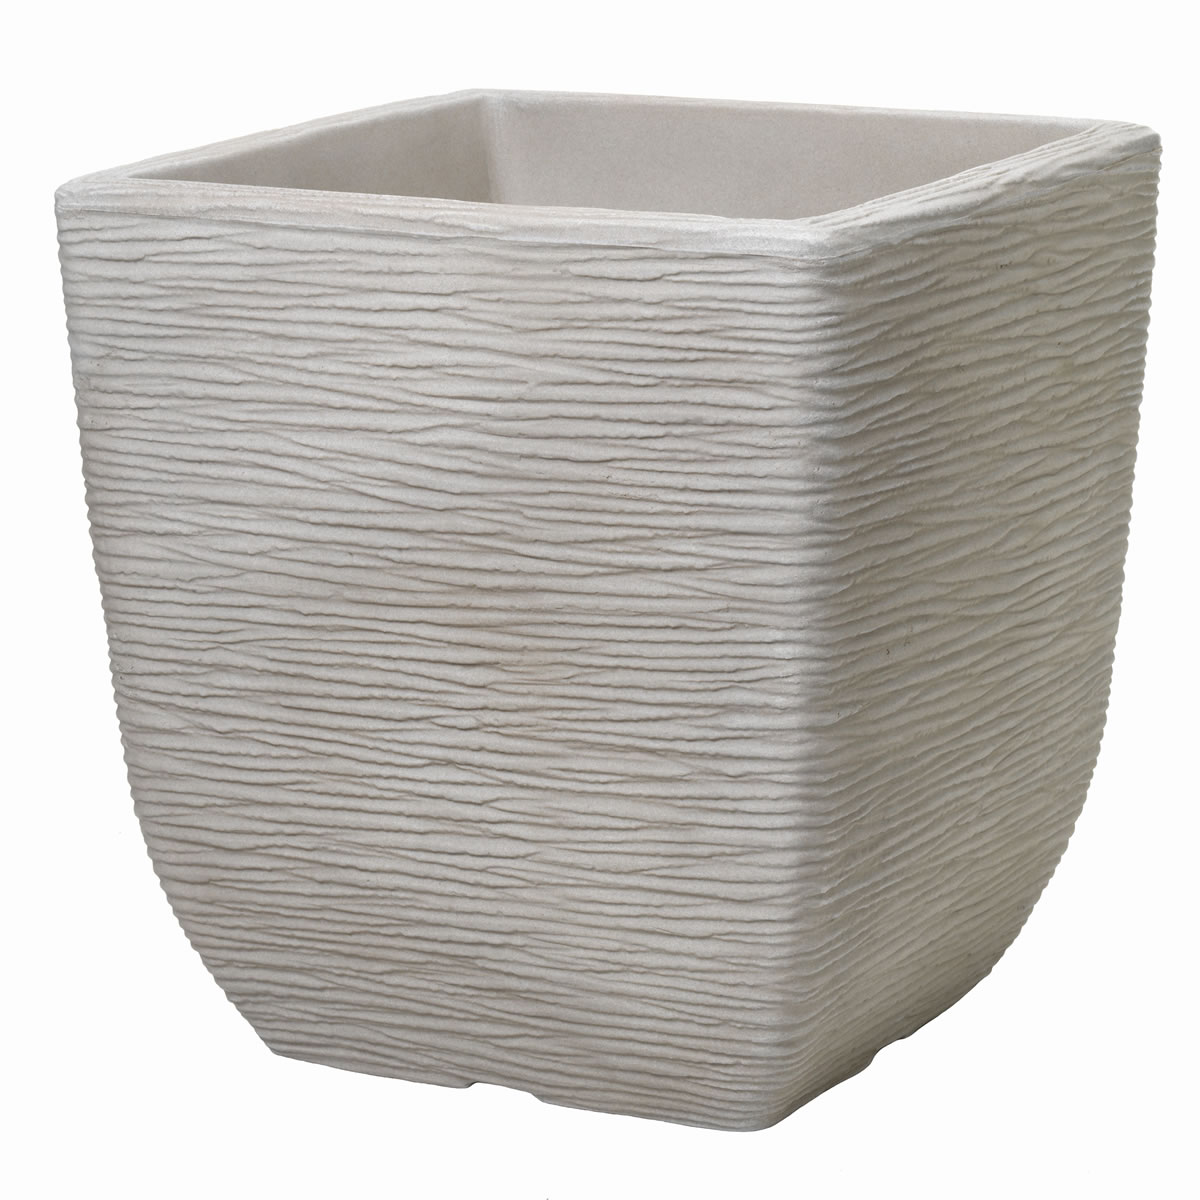 Extra image of Cotswold Square Planter - 38cm